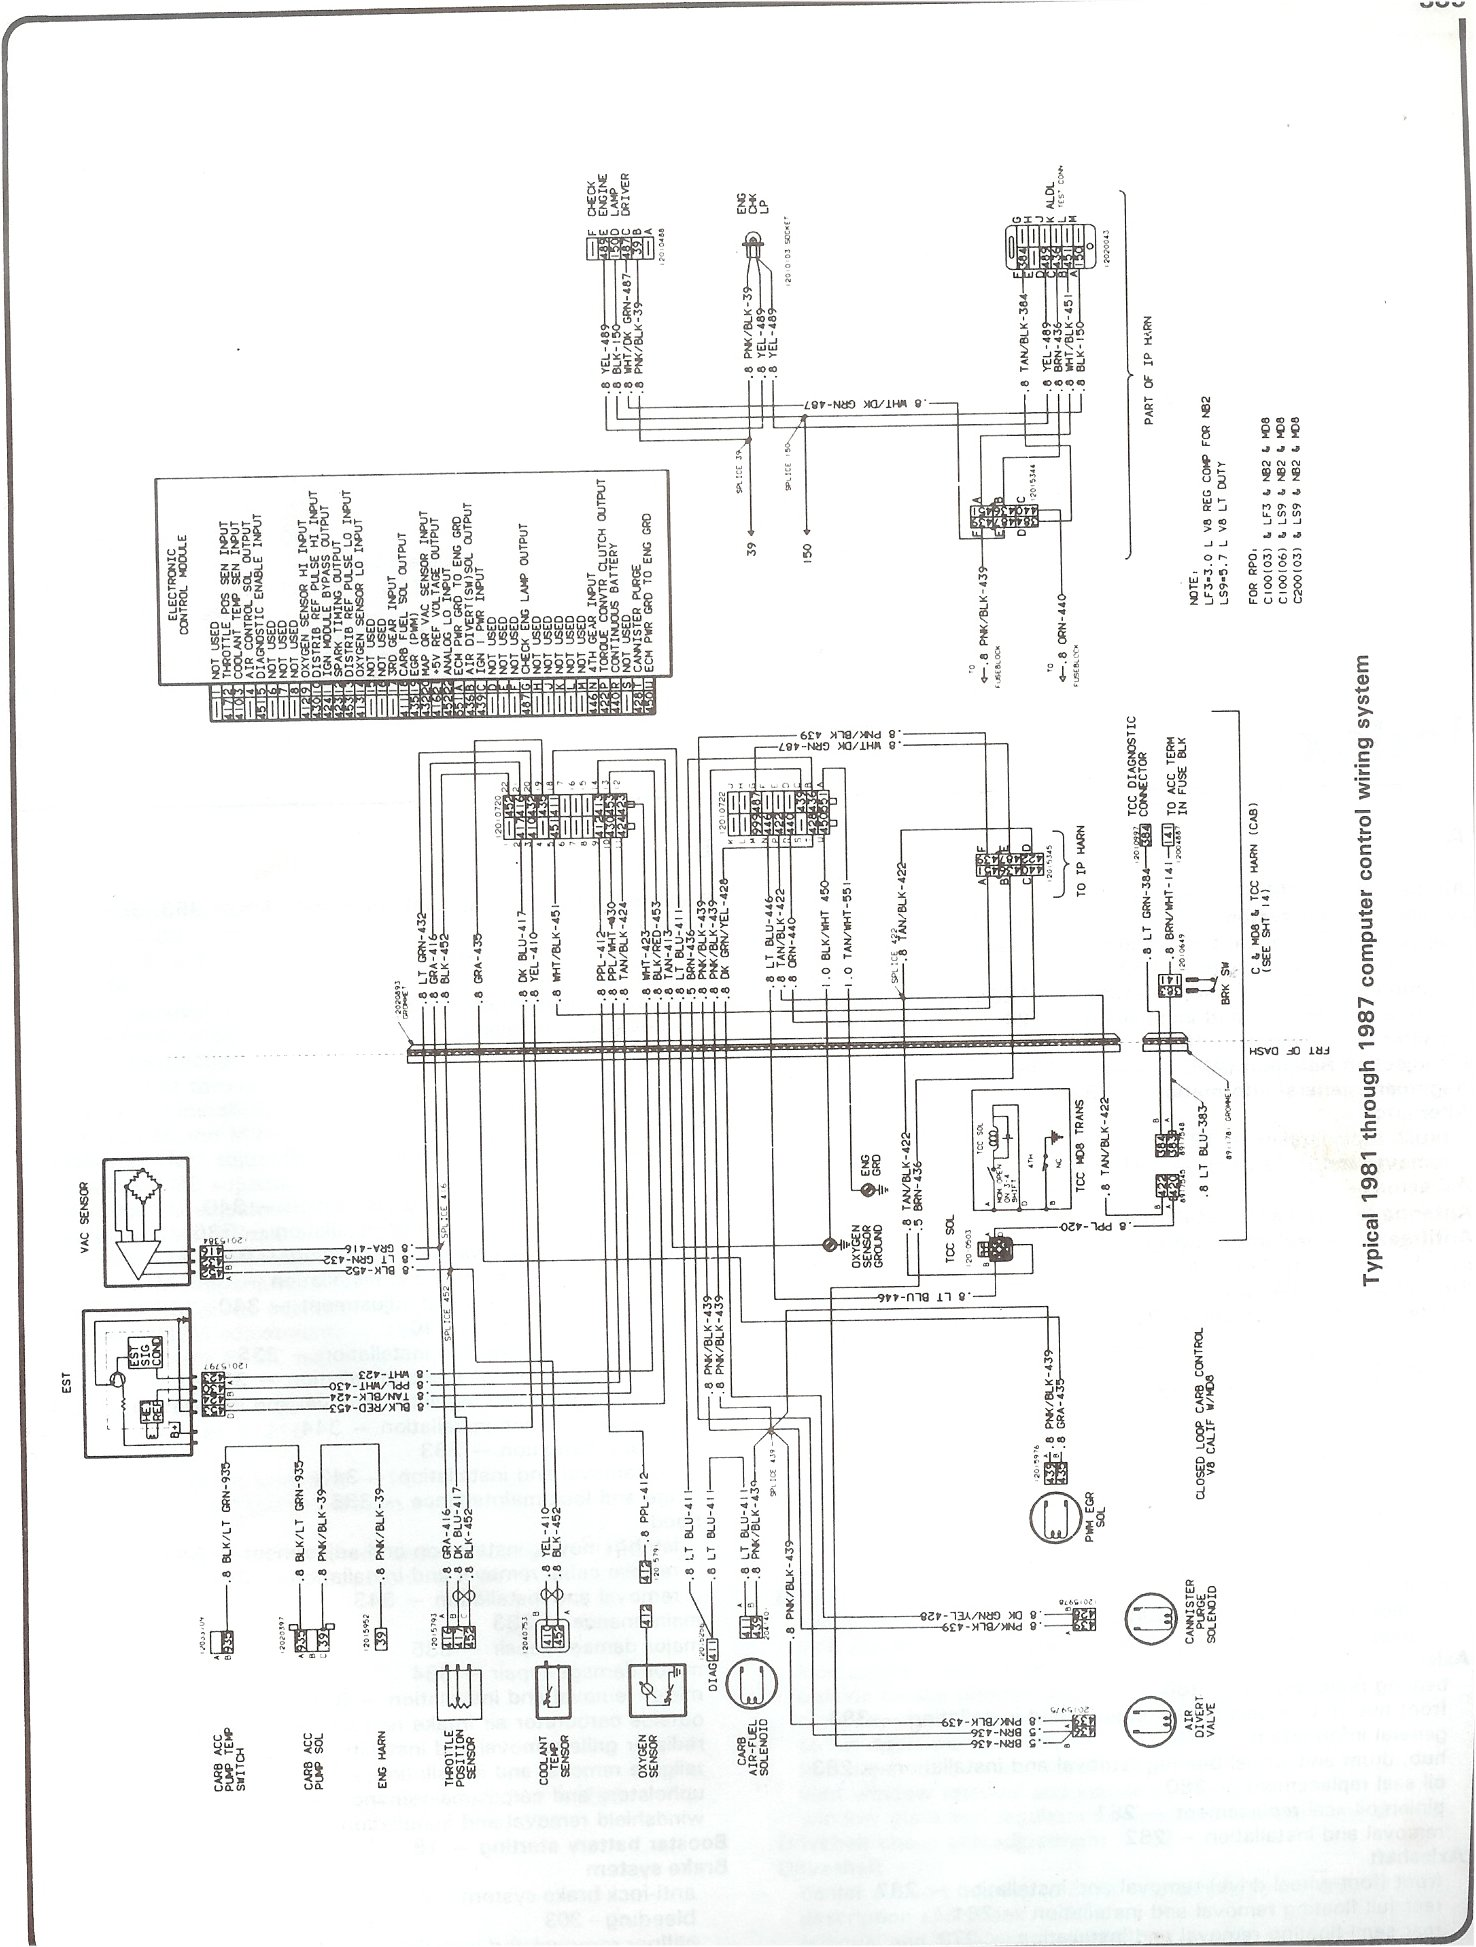 81 87_computer_control_wiring complete 73 87 wiring diagrams 1982 chevy truck wiring diagram at gsmx.co